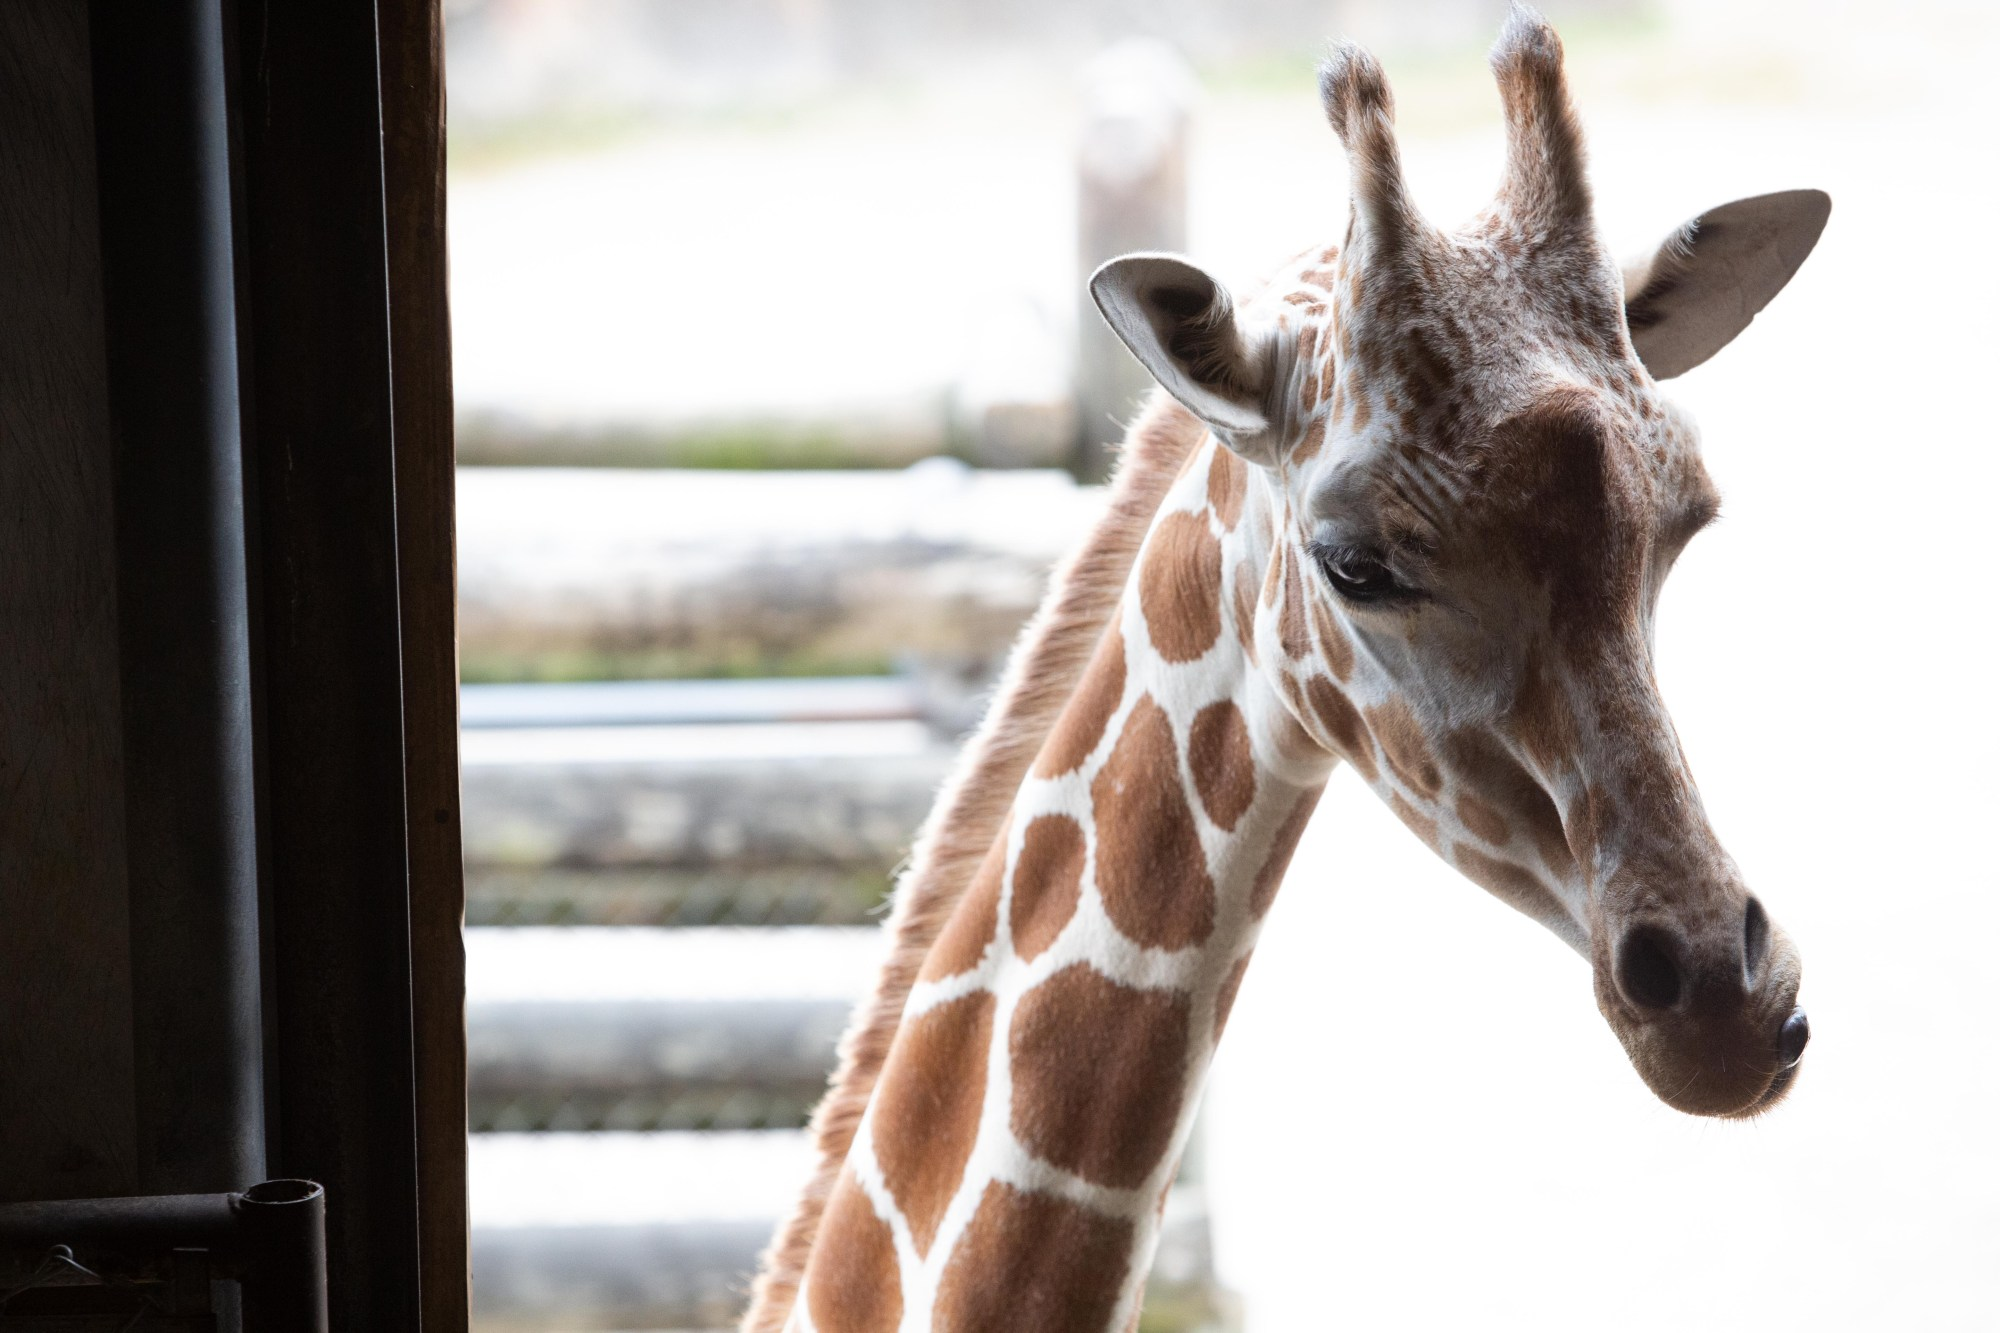 Zoo Knoxville said Friday, June 21, 2019, that Frances, a three-year-old giraffe, is exhibiting signs that she is in the final stages of pregnancy and should give birth within a few weeks.